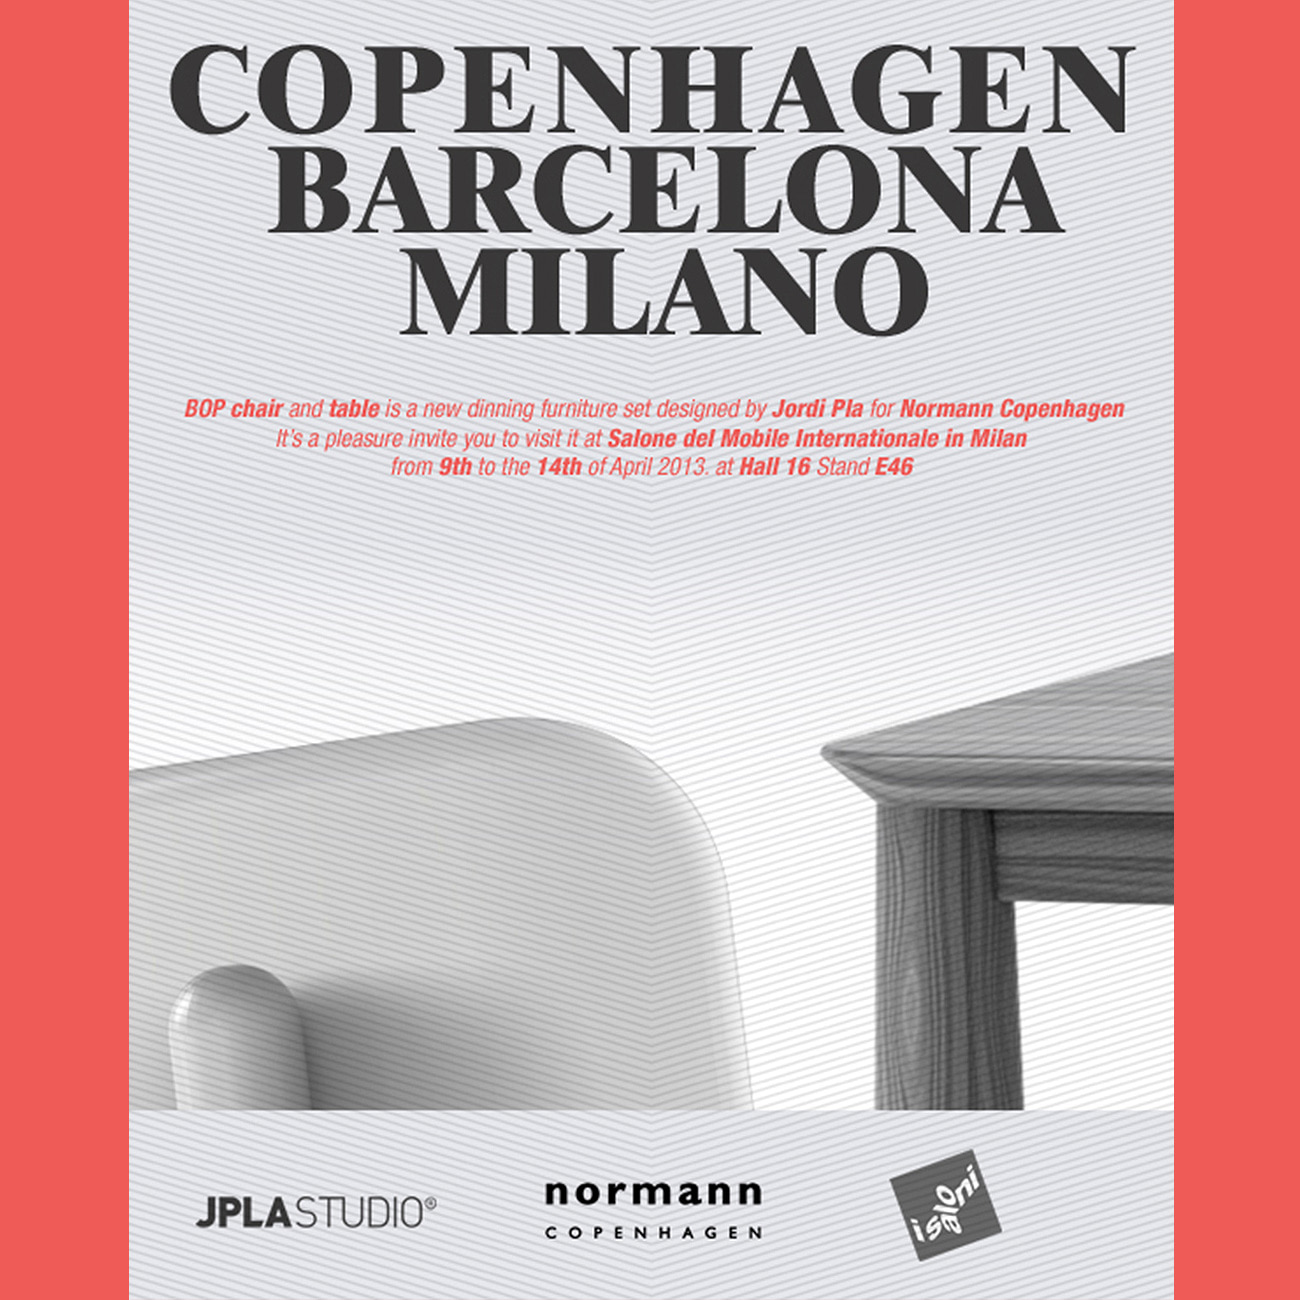 "Bop chair and table for Normann Copenhagen, designed by Jordi Pla is present at ""Salone del Mobile Internationale "". Milan 2013"